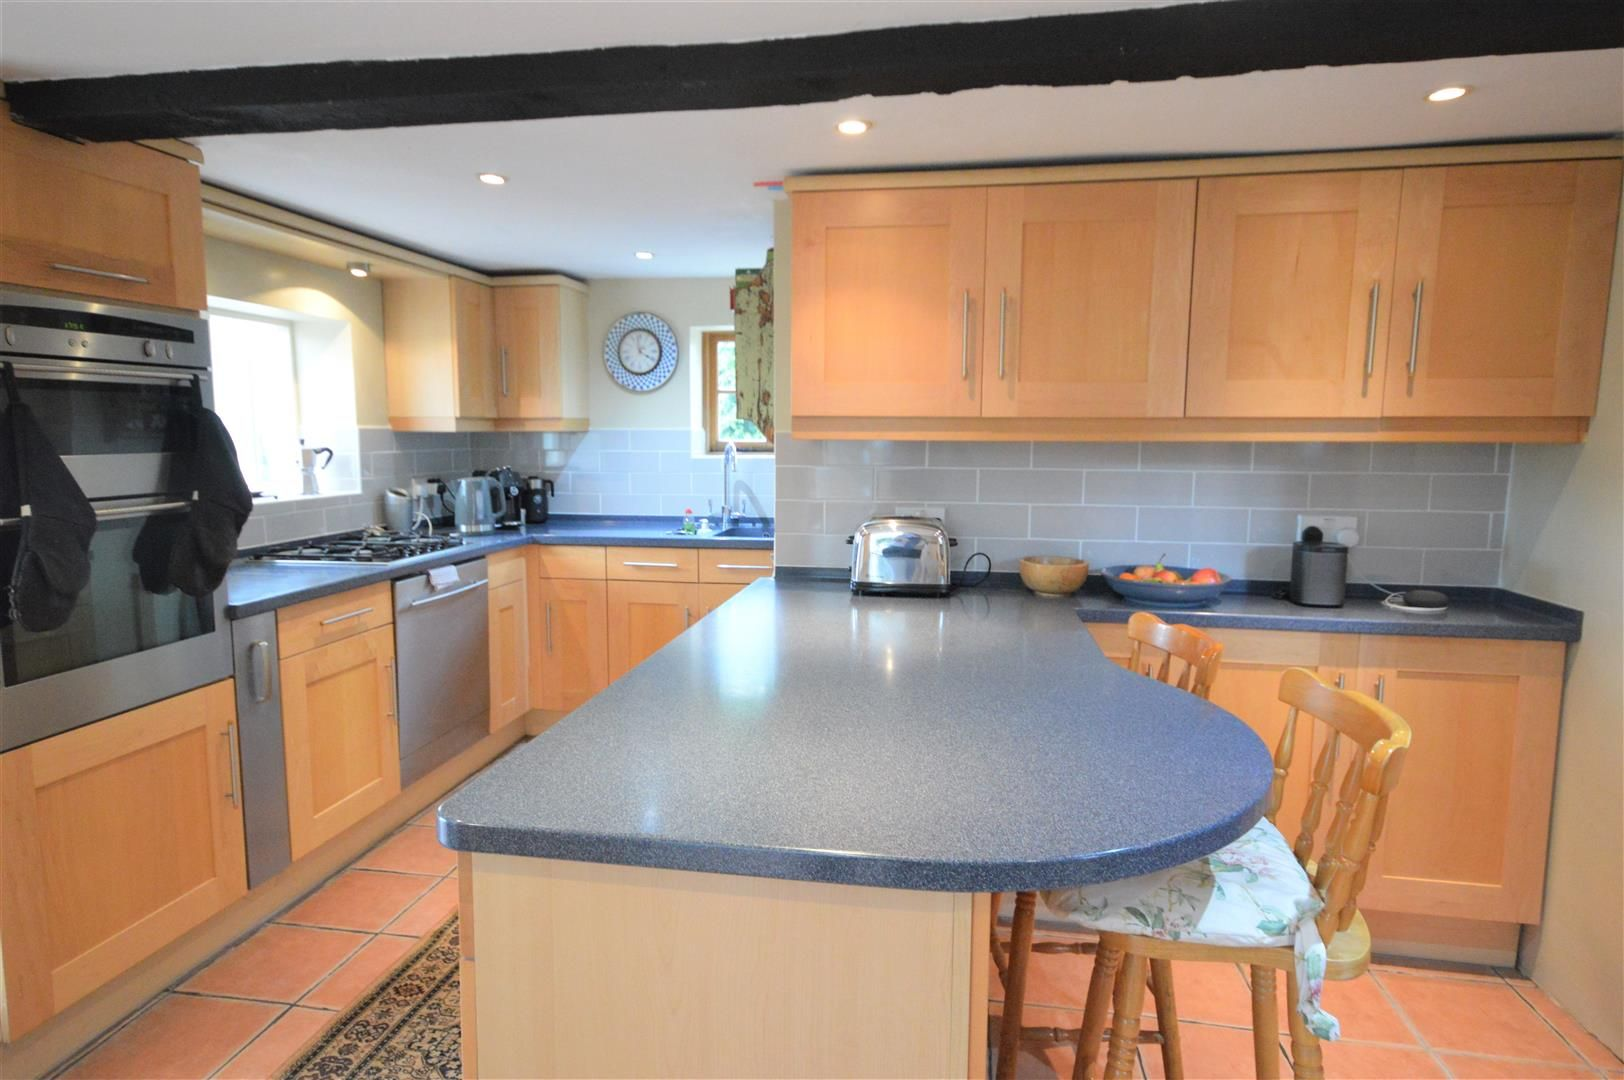 5 bed detached for sale in Marston  - Property Image 6